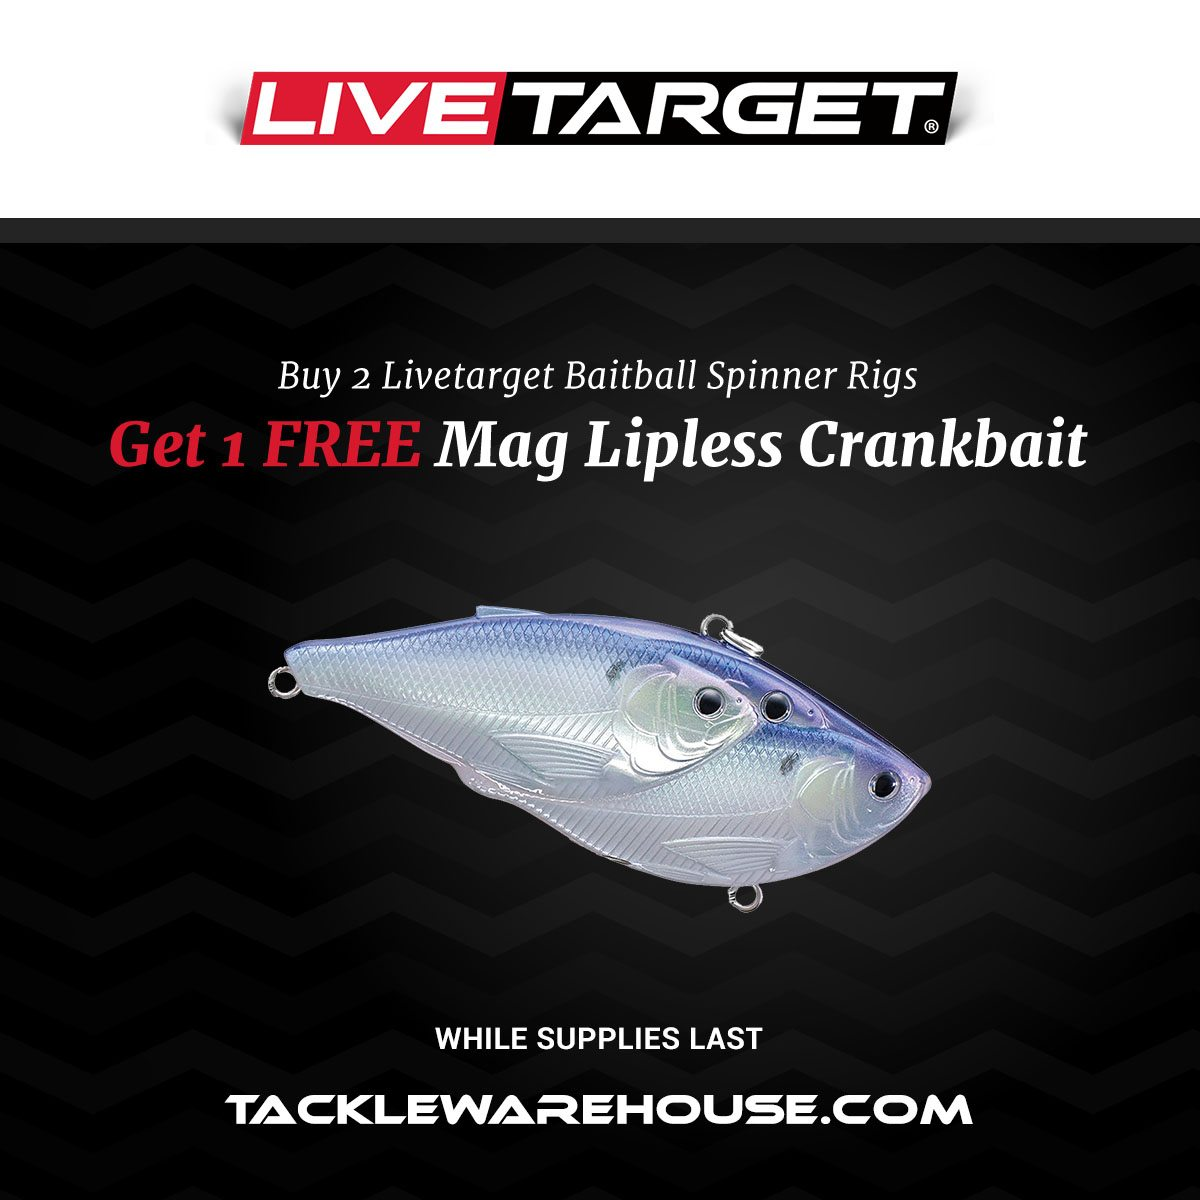 More New Promotions at Tackle Warehouse - Tackle Warehouse